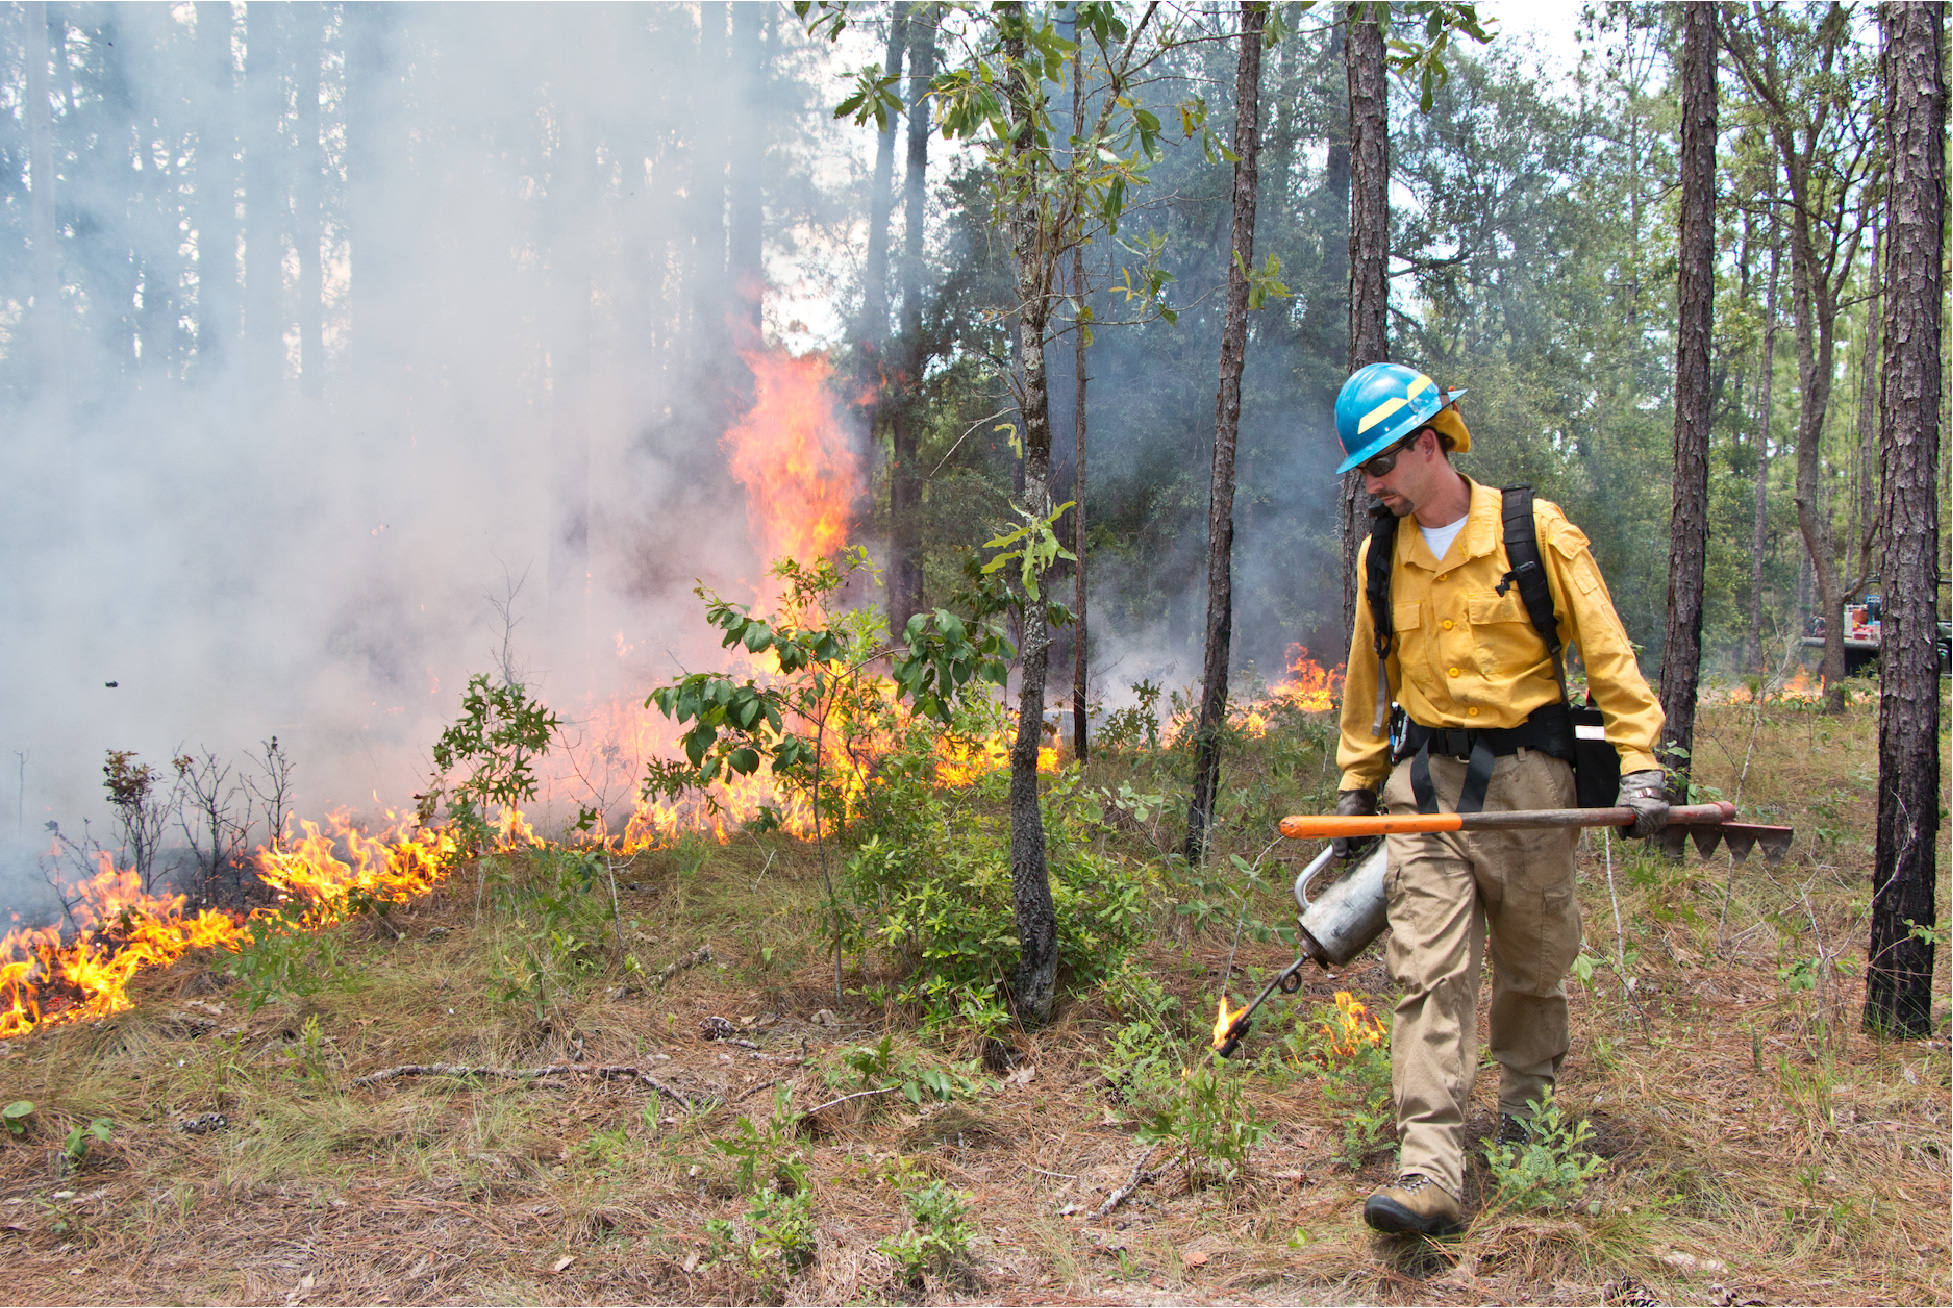 Control burn specialist burning land.